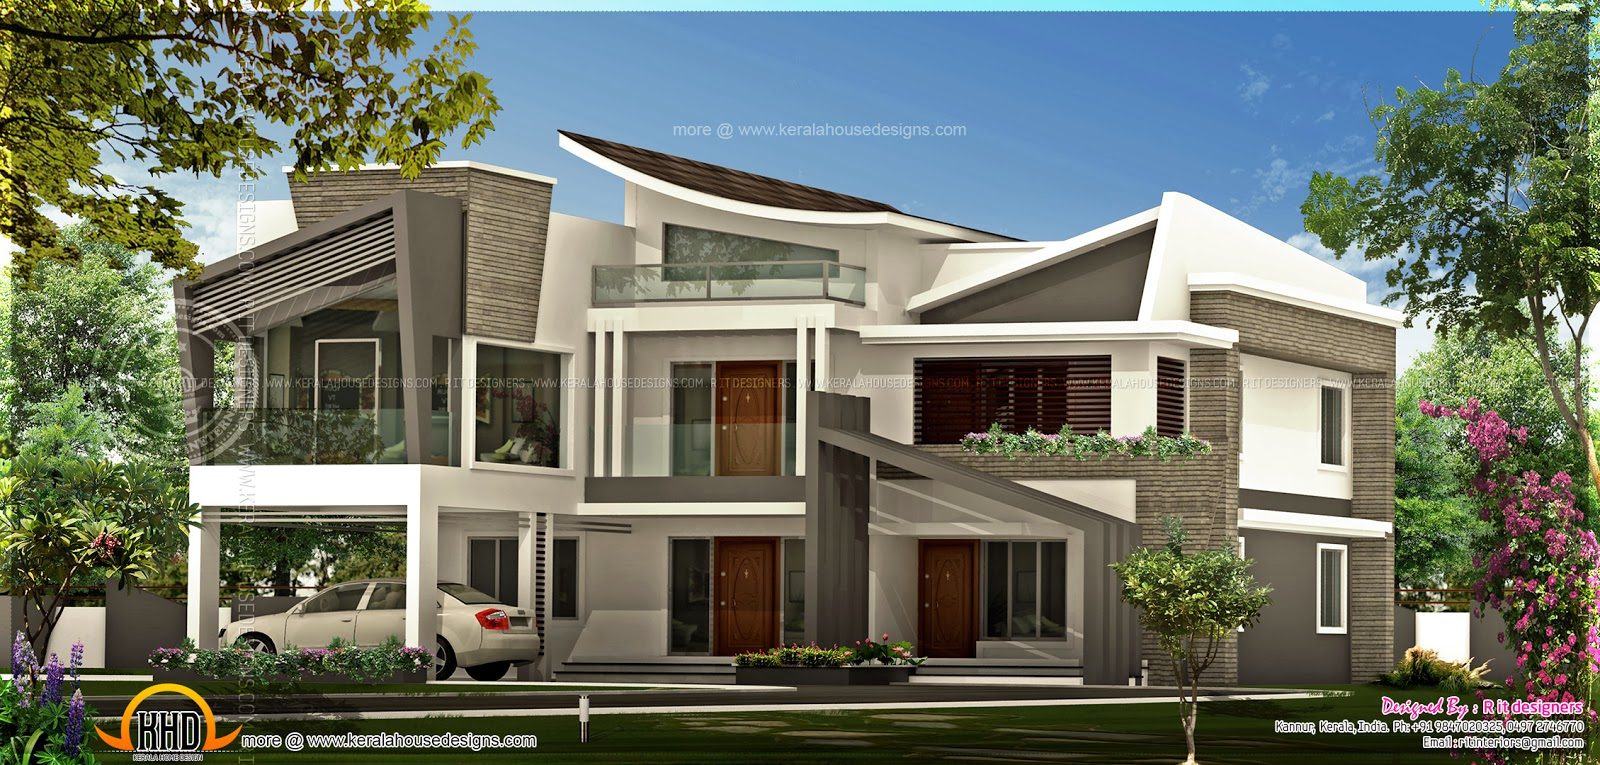 Top 19 Photos Ideas For Unique Modern Houses Home Plans